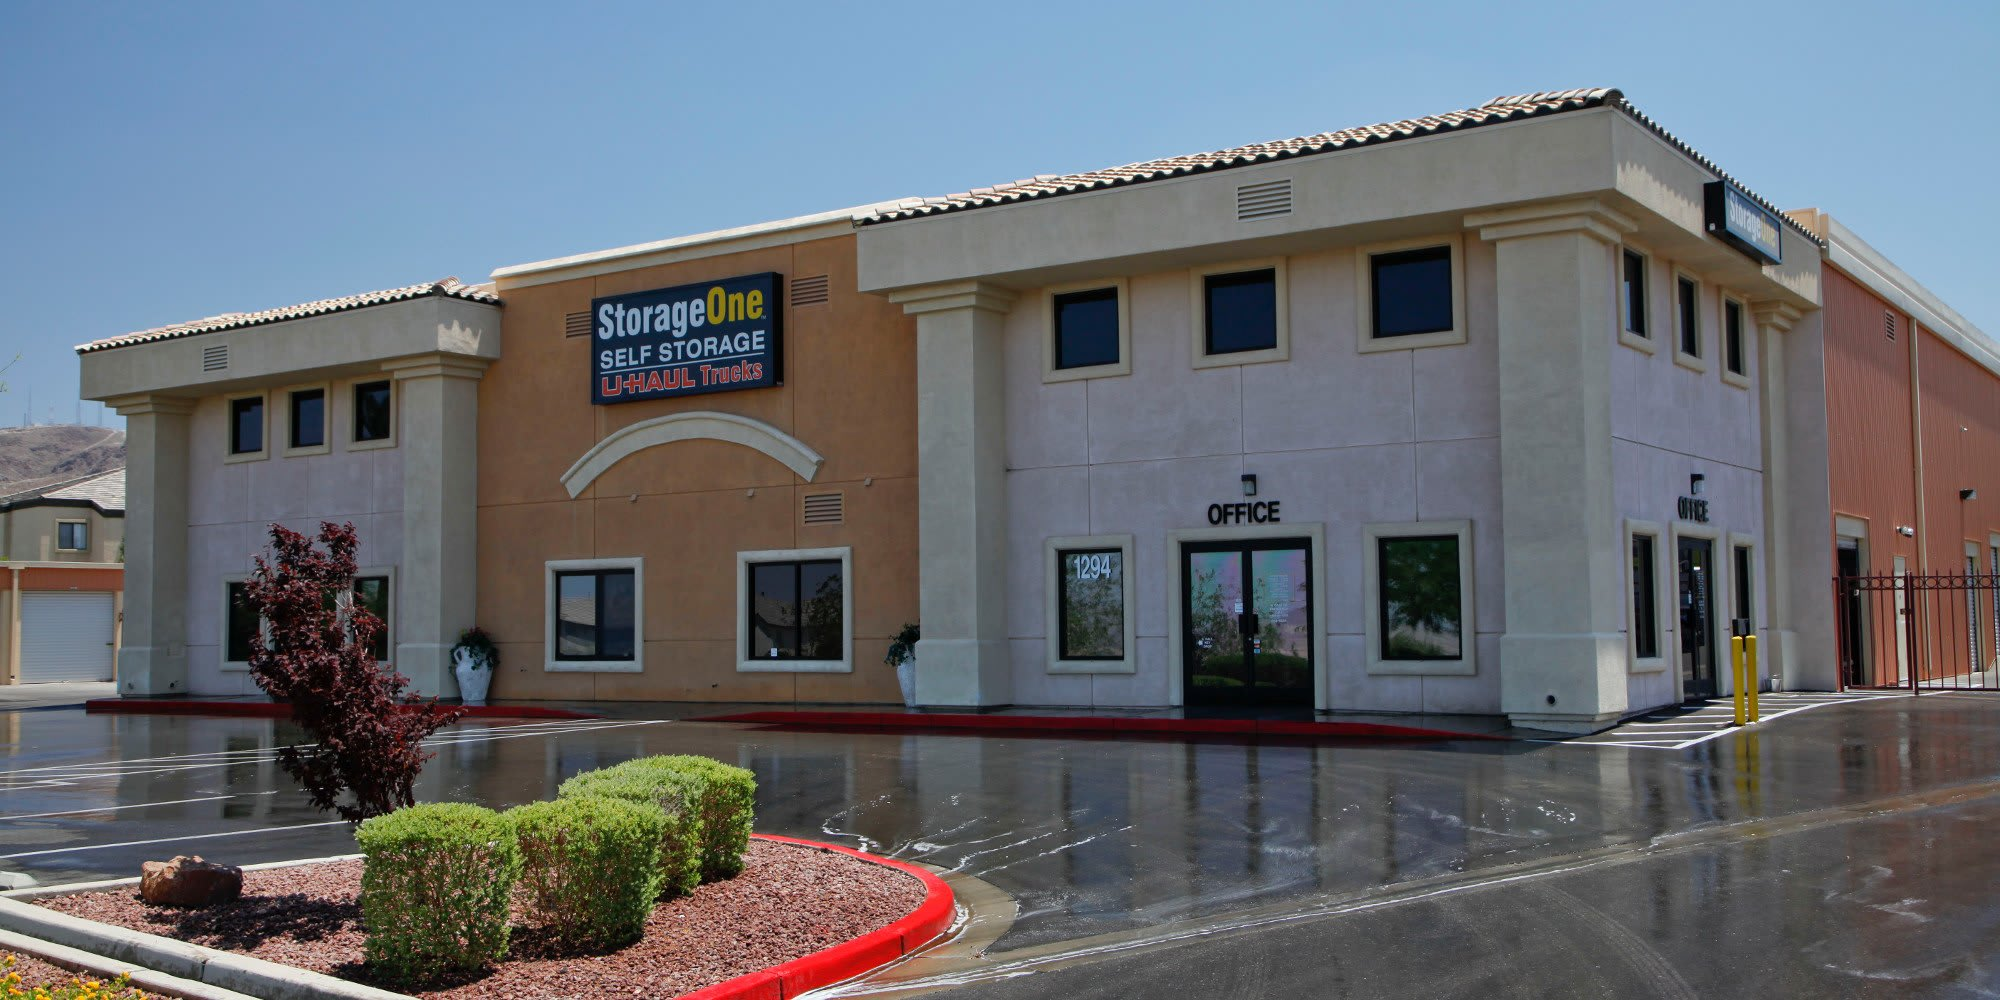 Self storage in Henderson NV